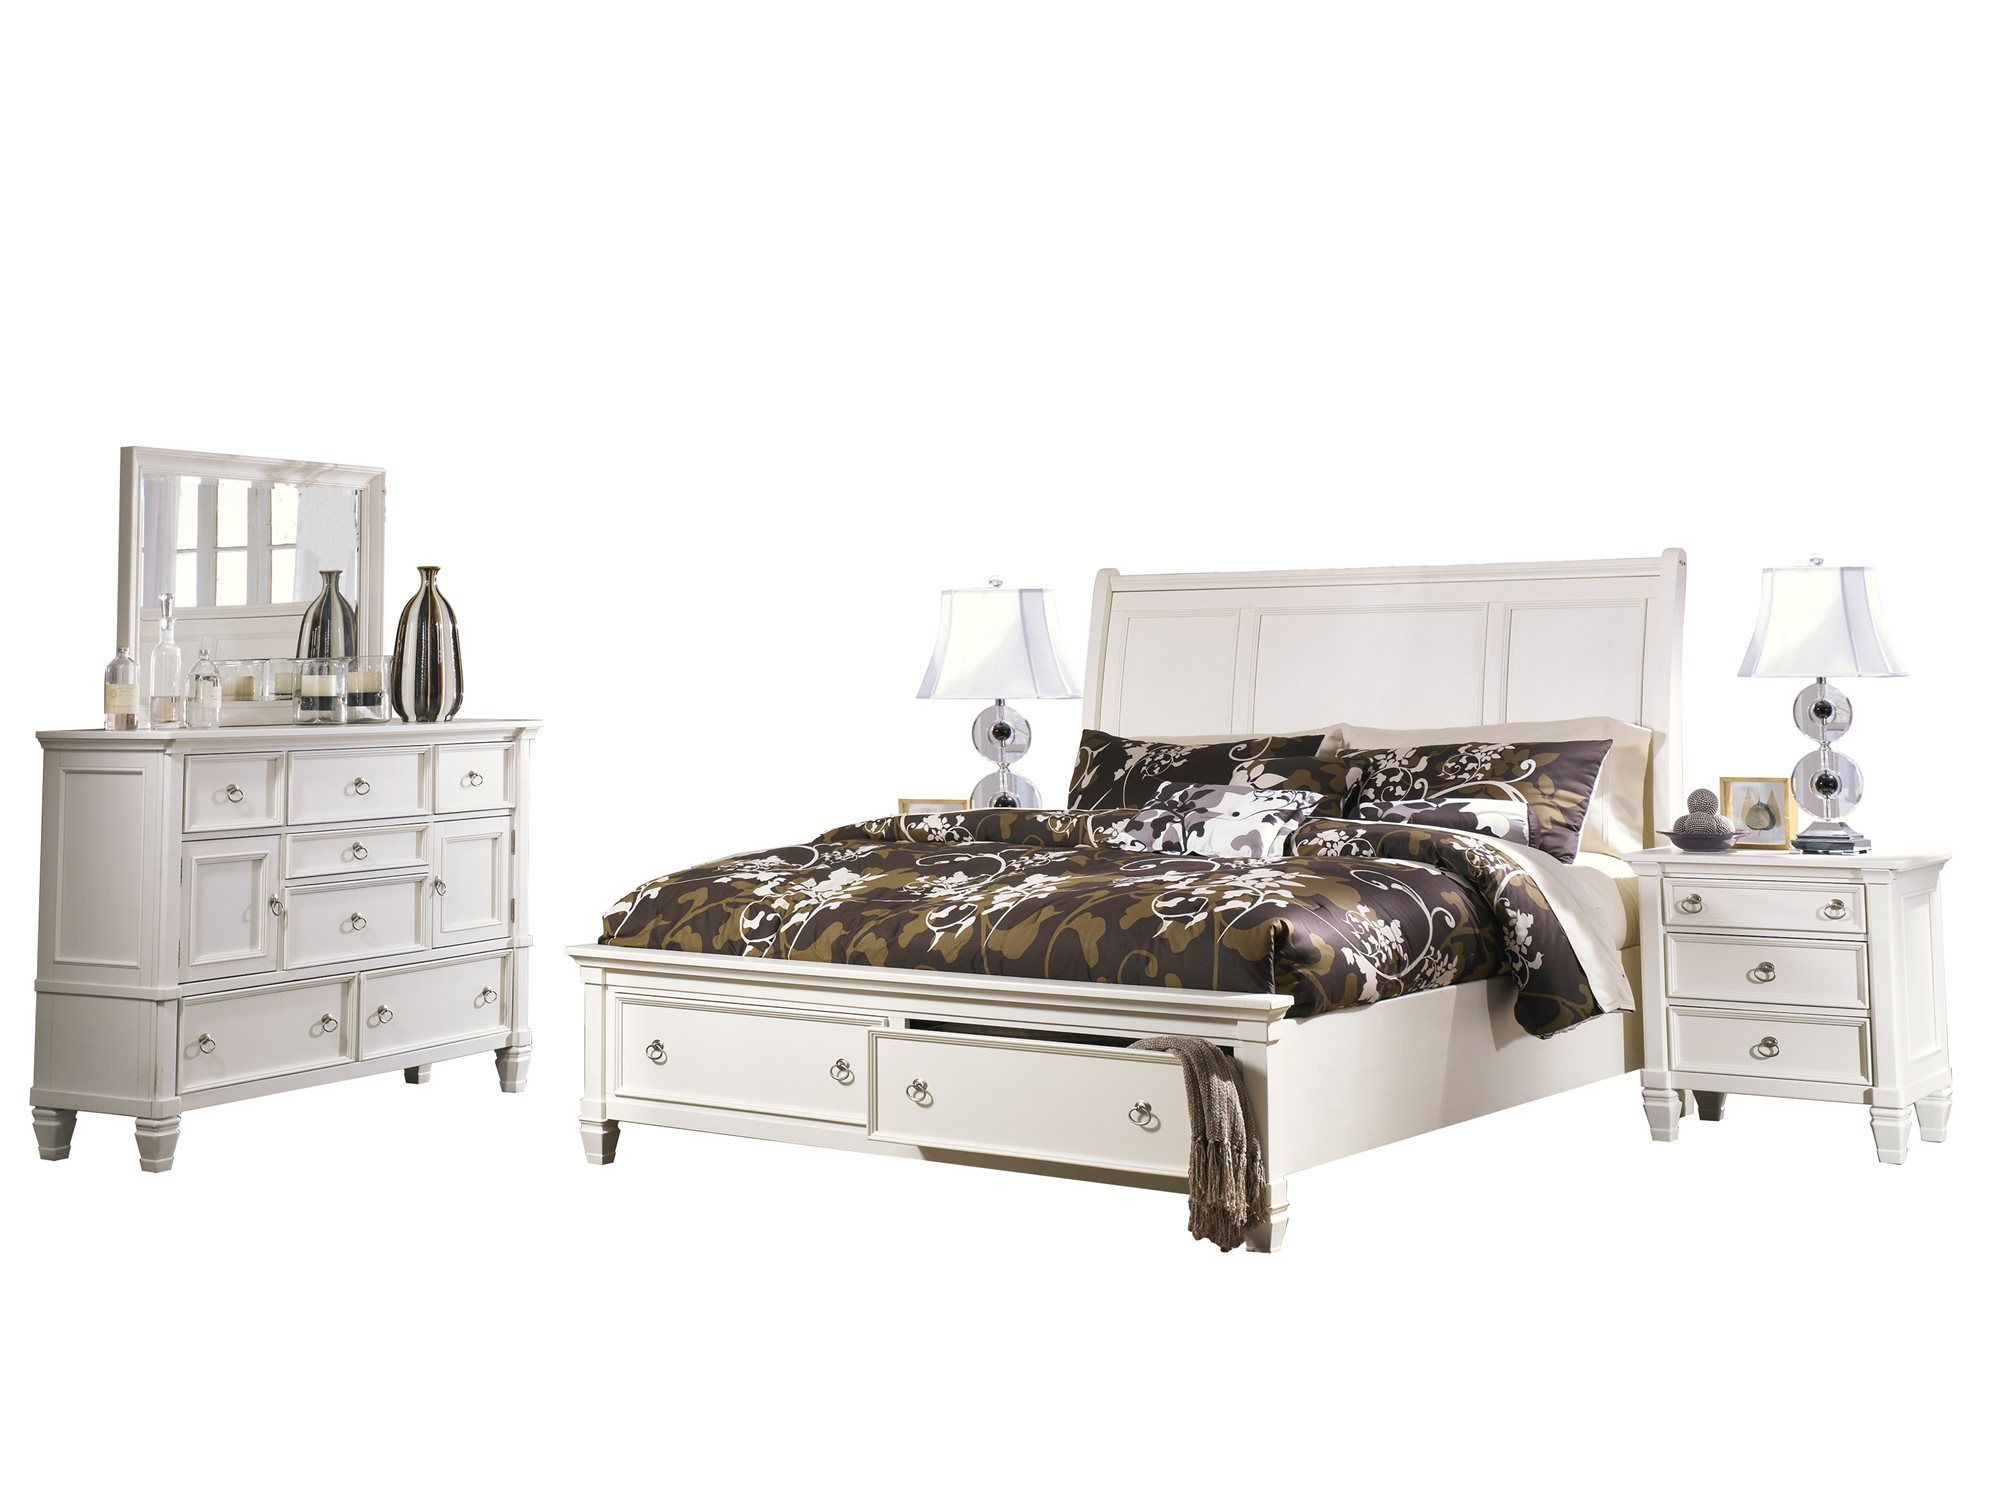 Ashley Furniture Prentice 5 Pc Bedroom Set Cal King Sleigh Bed Dresser Mirror 2 Nightstand White Walmart Com Walmart Com